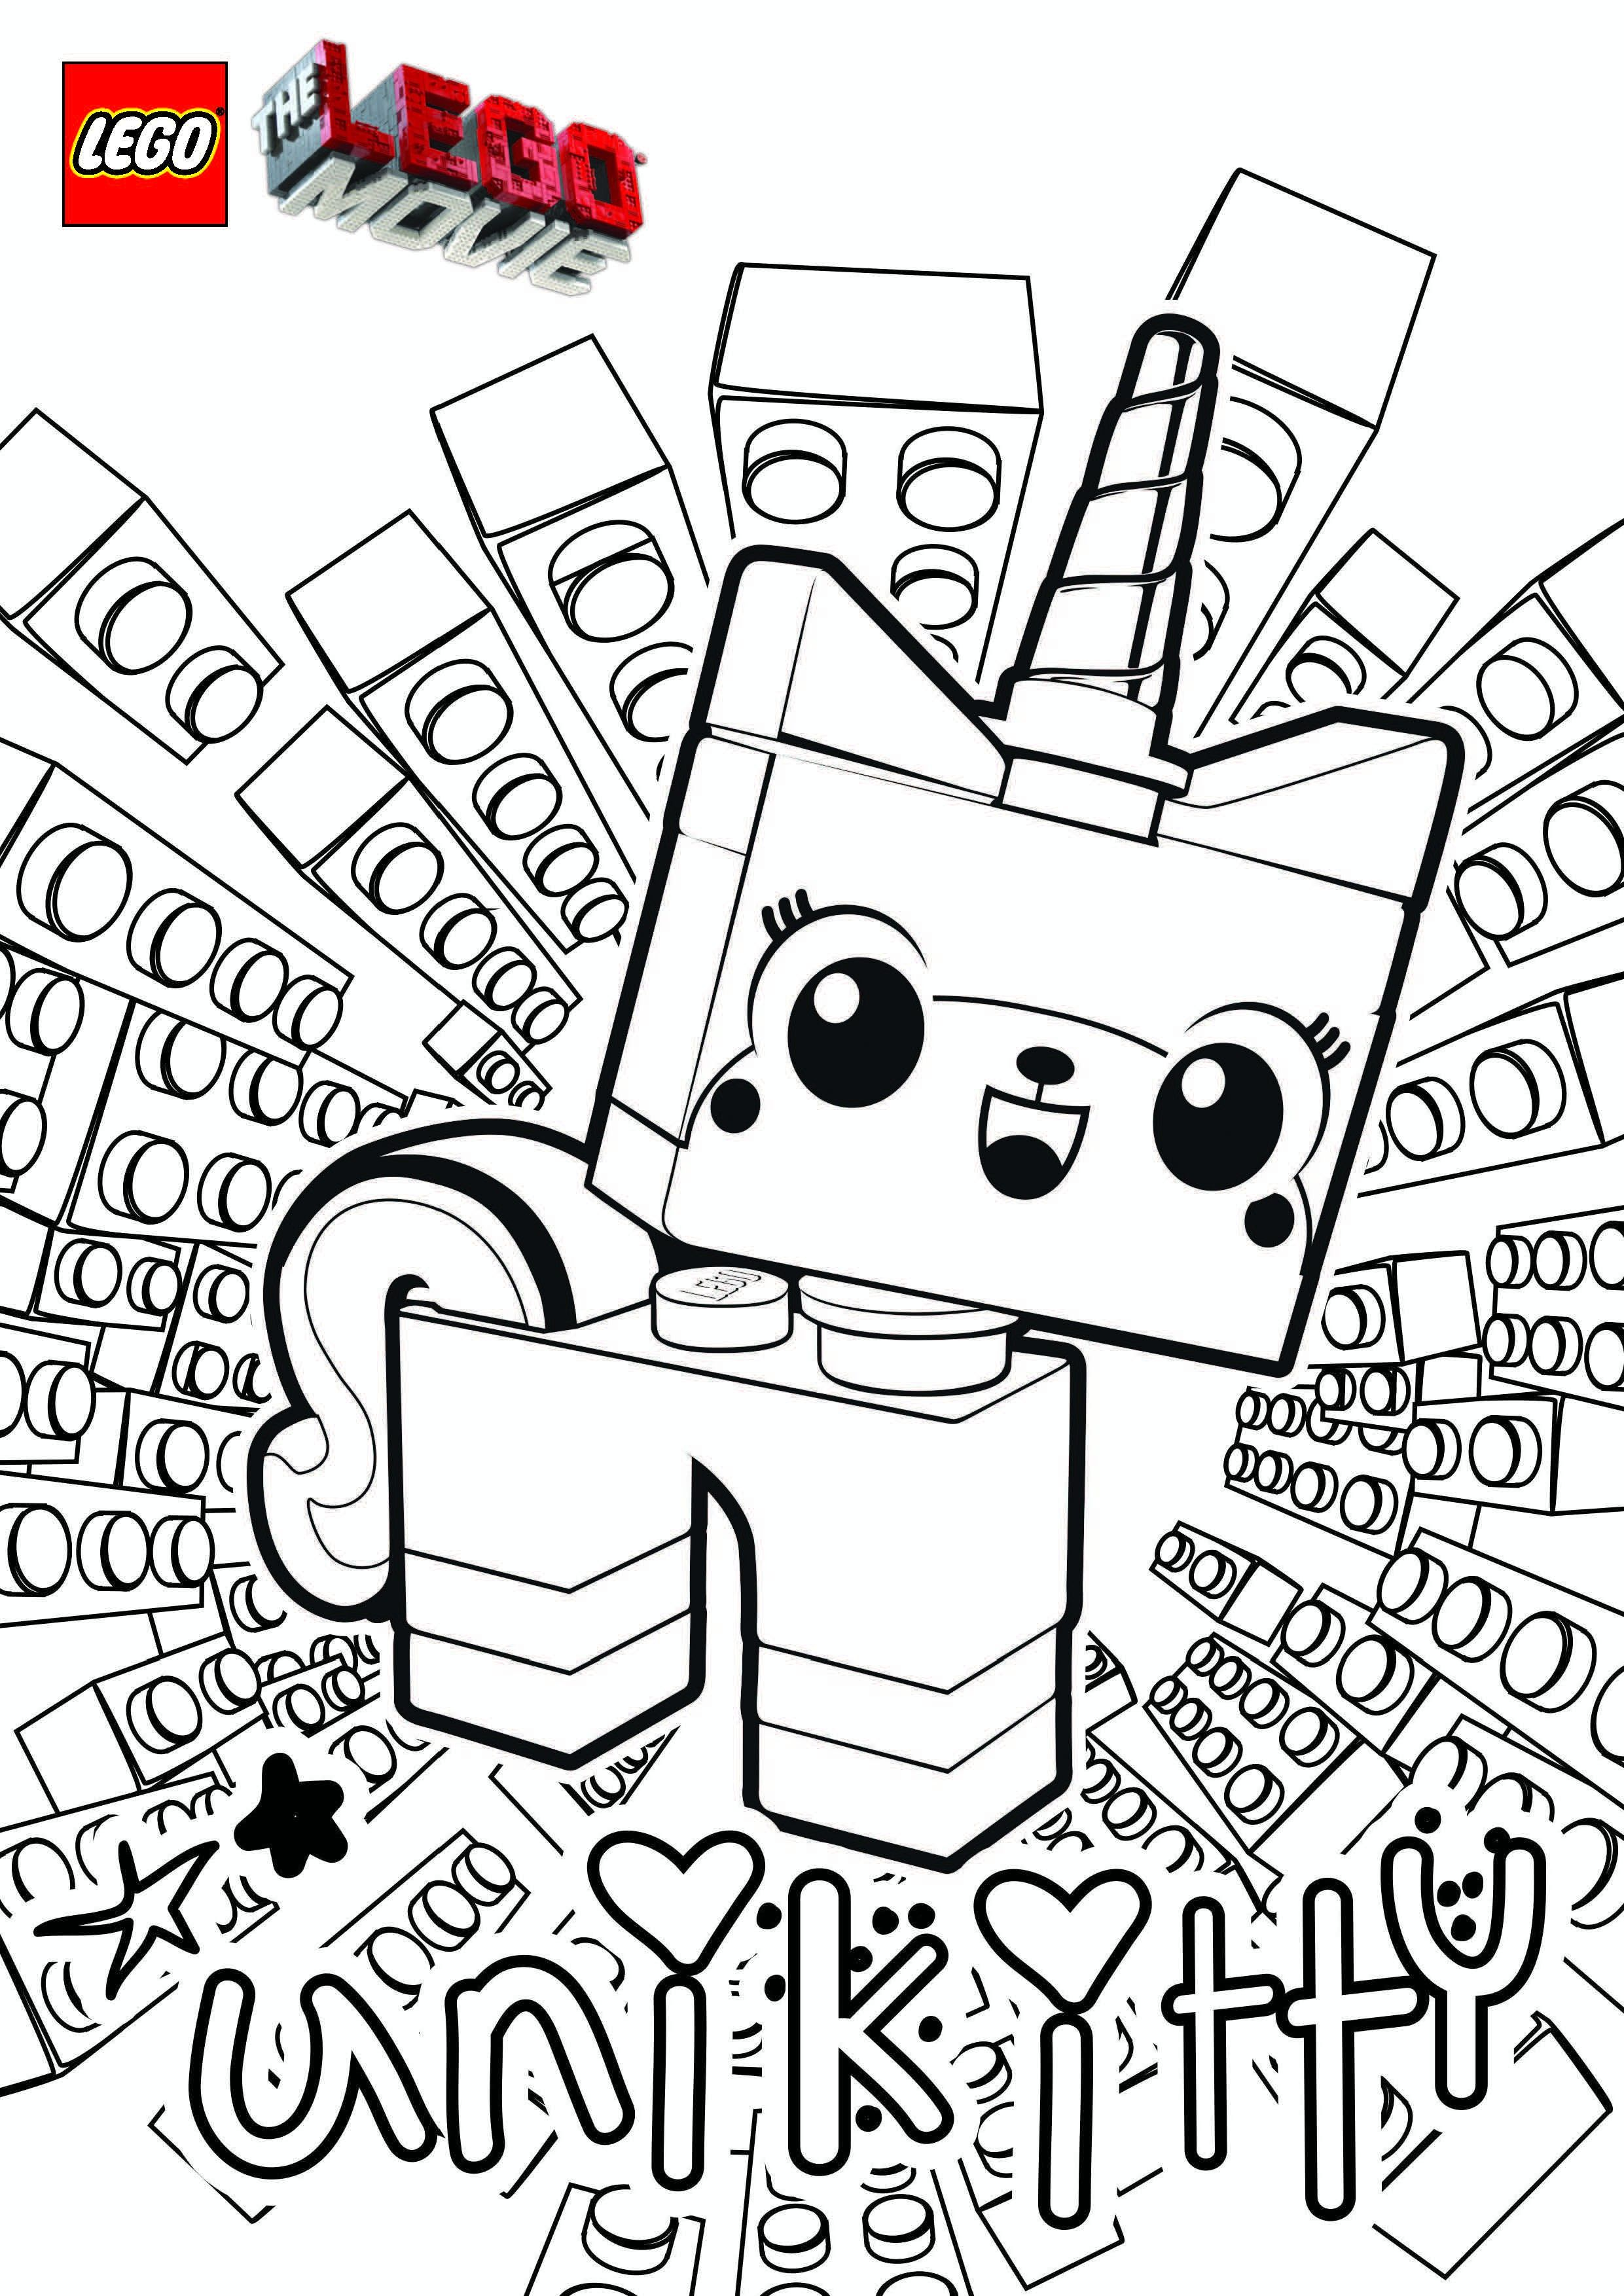 Princess Unikitty Coloring Pages Through The Thousand Images On Line About Princess Unikitty Colo Lego Coloring Pages Lego Movie Coloring Pages Lego Coloring